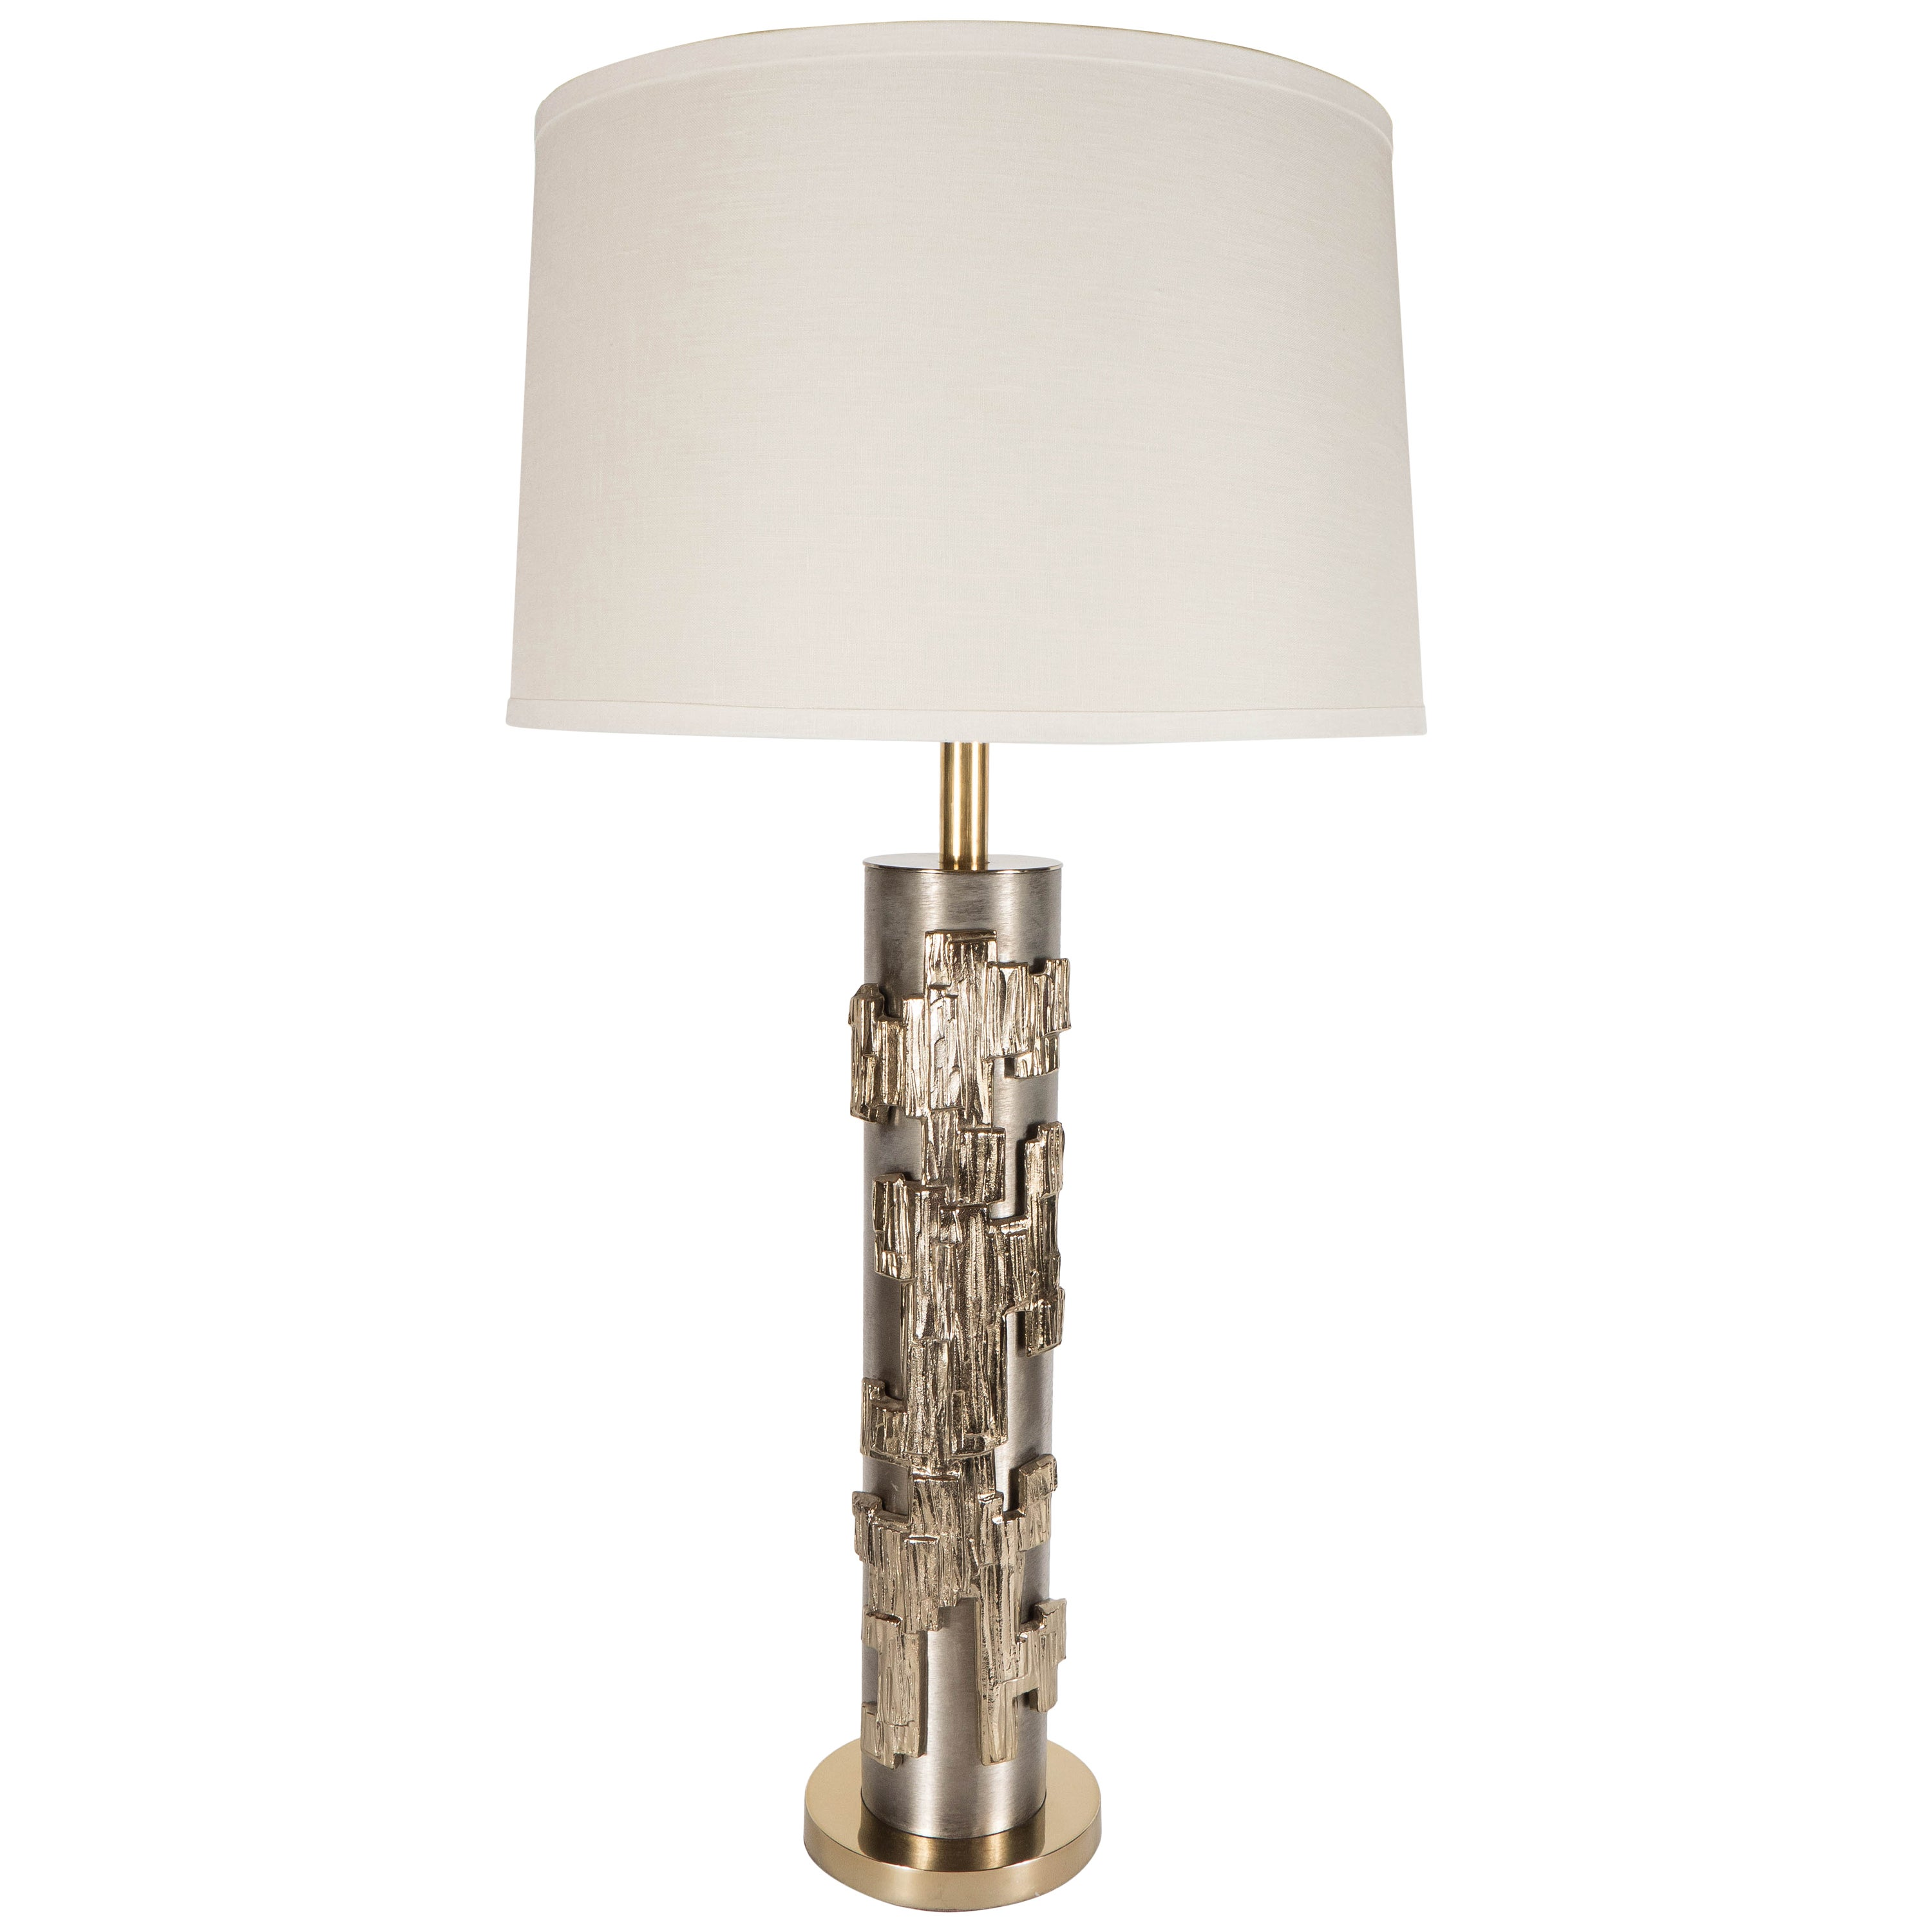 Laurel Lamp Co. Brutalist Brushed Steel Table Lamp w/ Striated Brass Appliqués